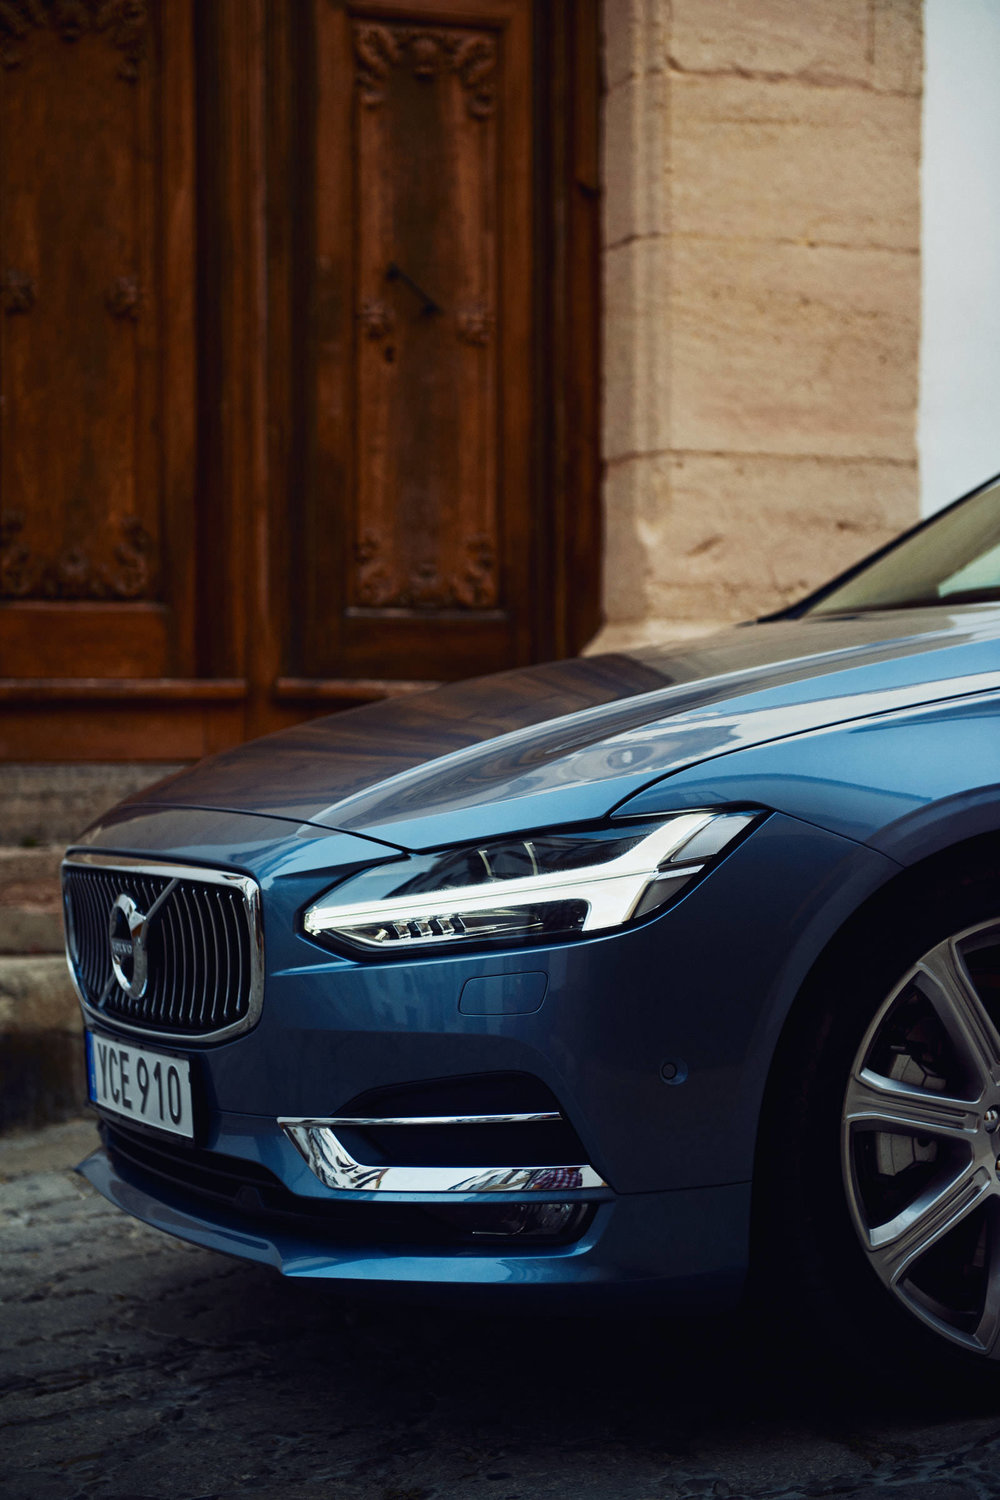 Portfolio_397_Volvo Cars_S90_Spain_DSC8479_KRISTOFER SAMUELSSON PHOTOGRAPHY.jpg